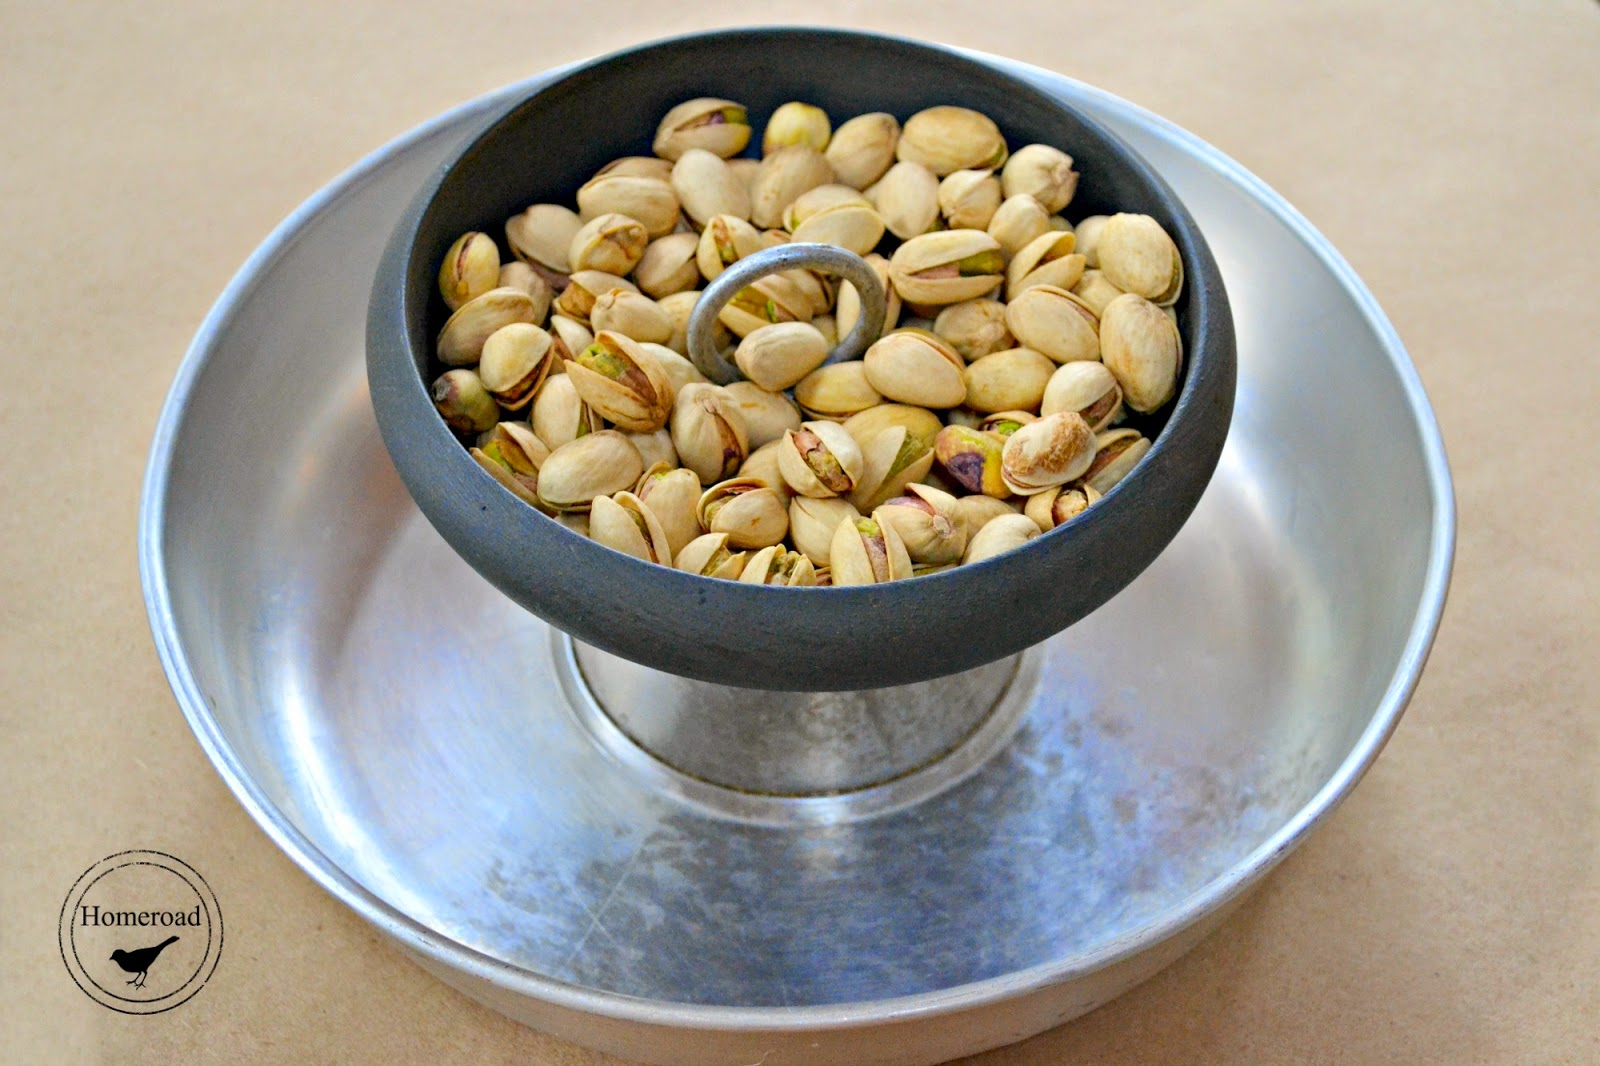 repurposed pistachio bowl www.homeroad.net